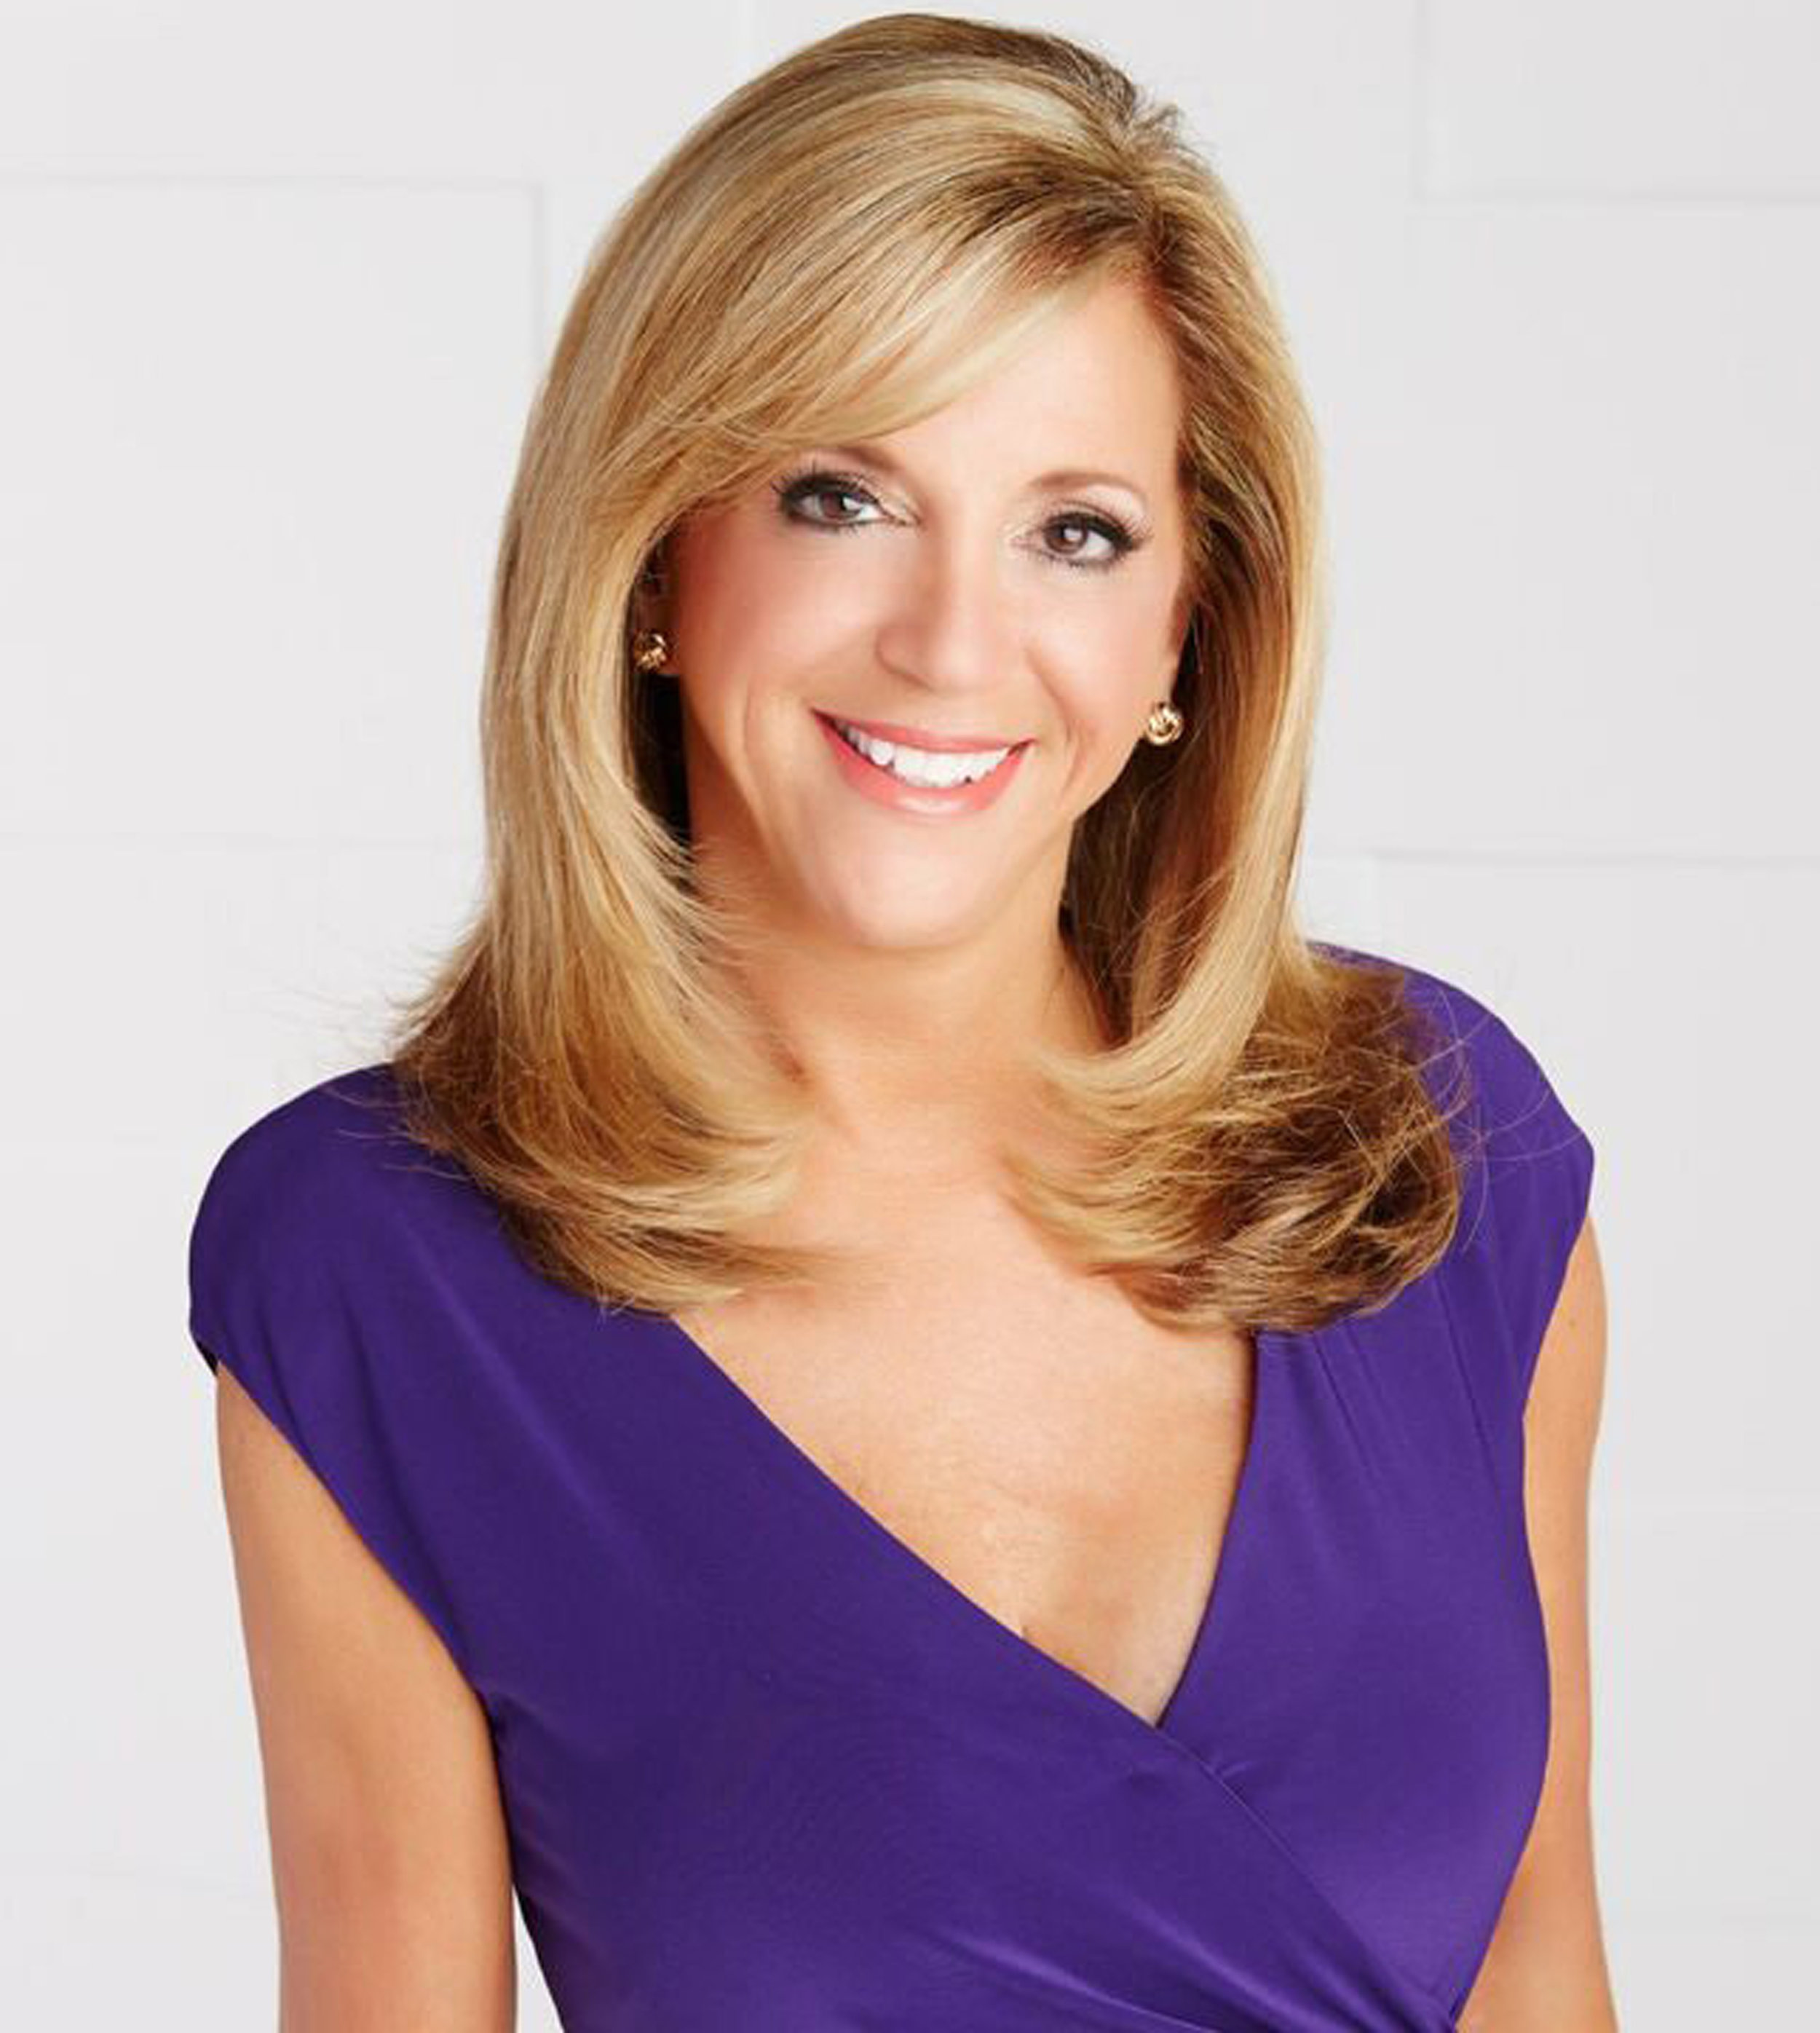 Joy Mangano, the star of the movie Joy, has sold more than $3 billion worth of home products.